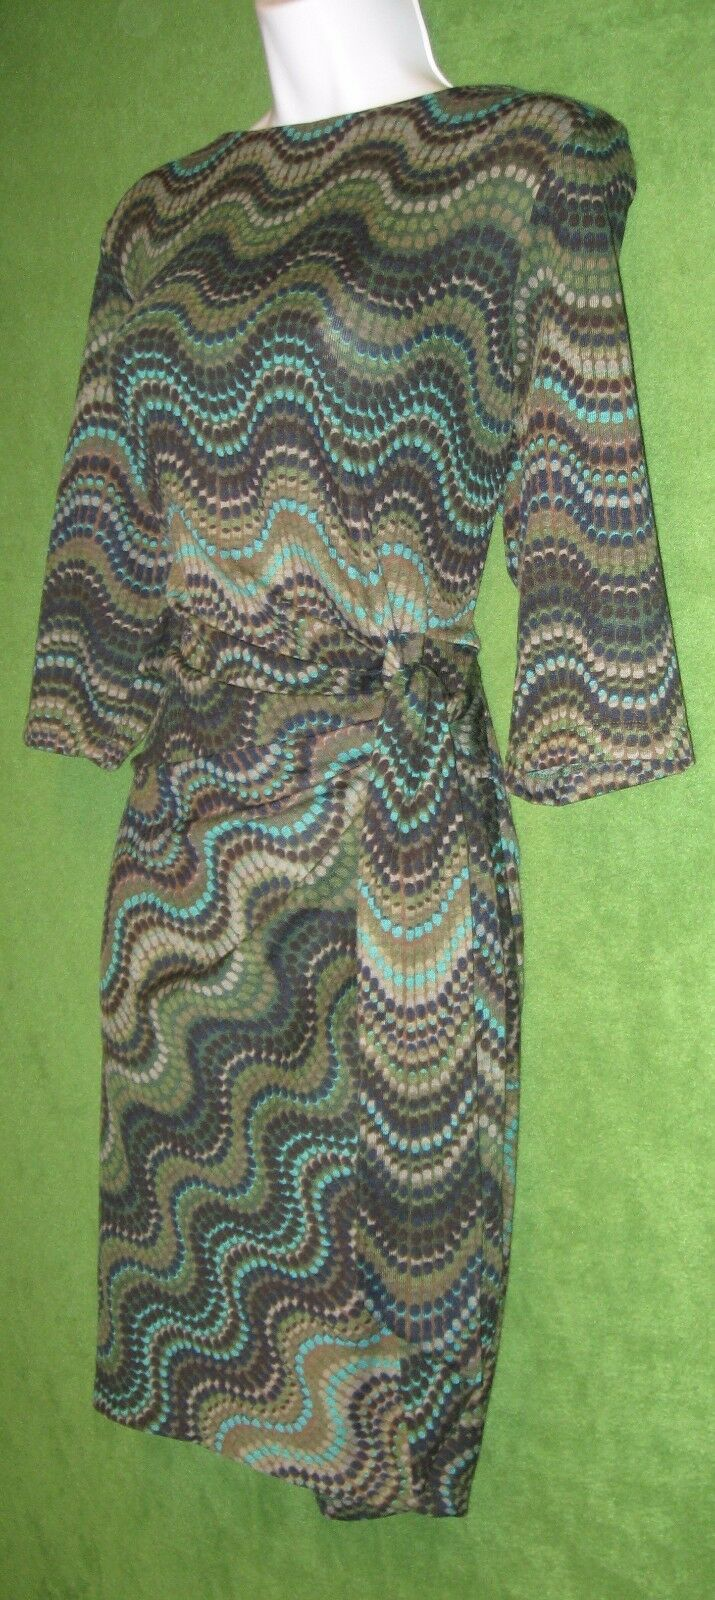 Shelby & Palmer Brown Teal Teal Teal Stretch Knit Ruched Tie Social Dress XL 16  79 MISC efef20